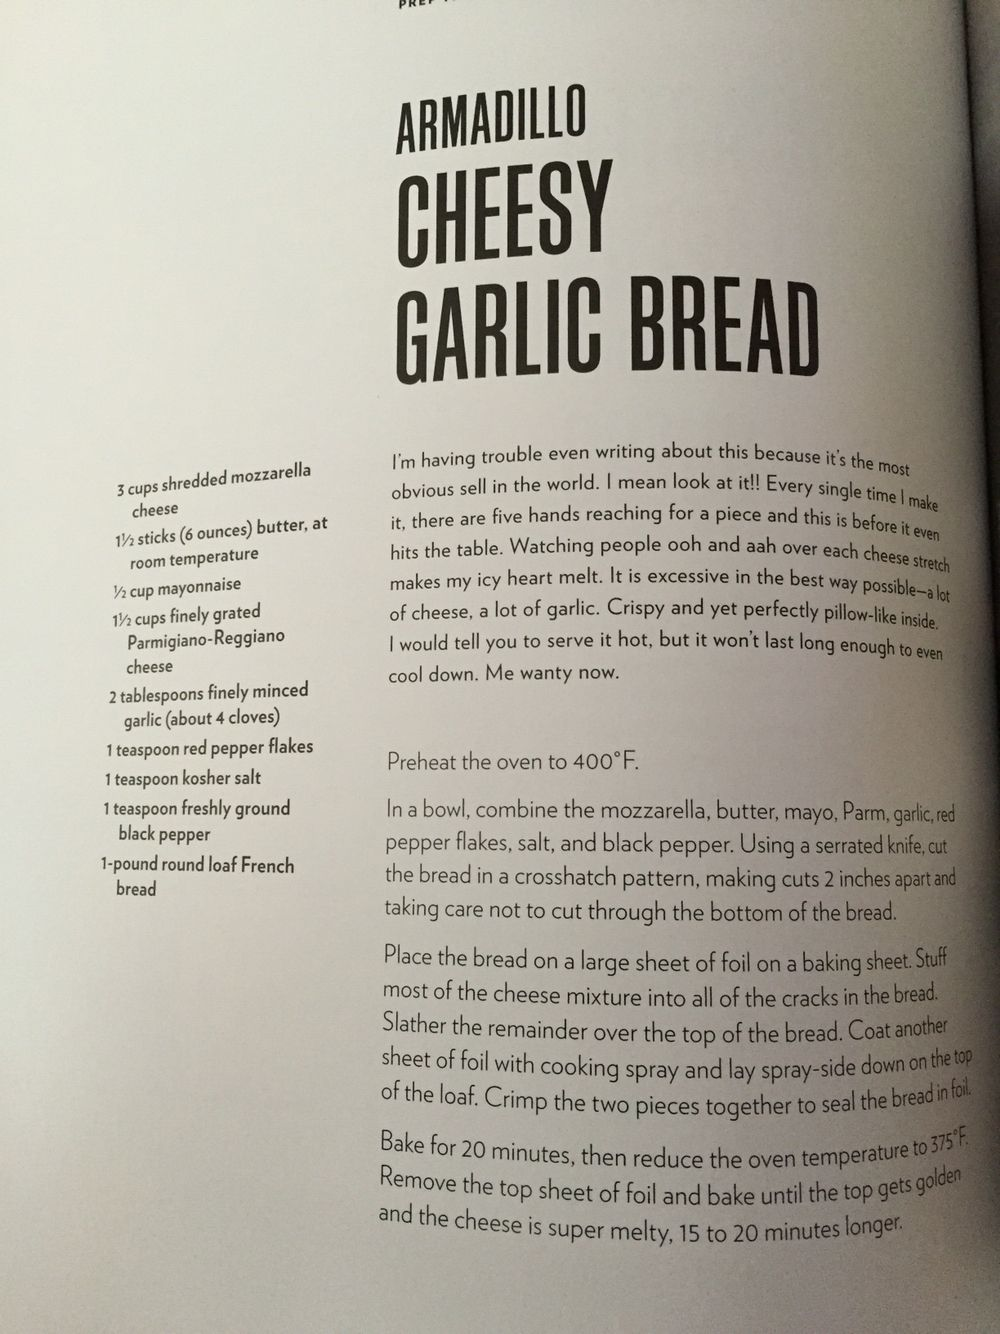 Chrissy Teigen S Armadillo Cheesy Garlic Bread Garlic Bread Cheesy Garlic Bread Chrissy